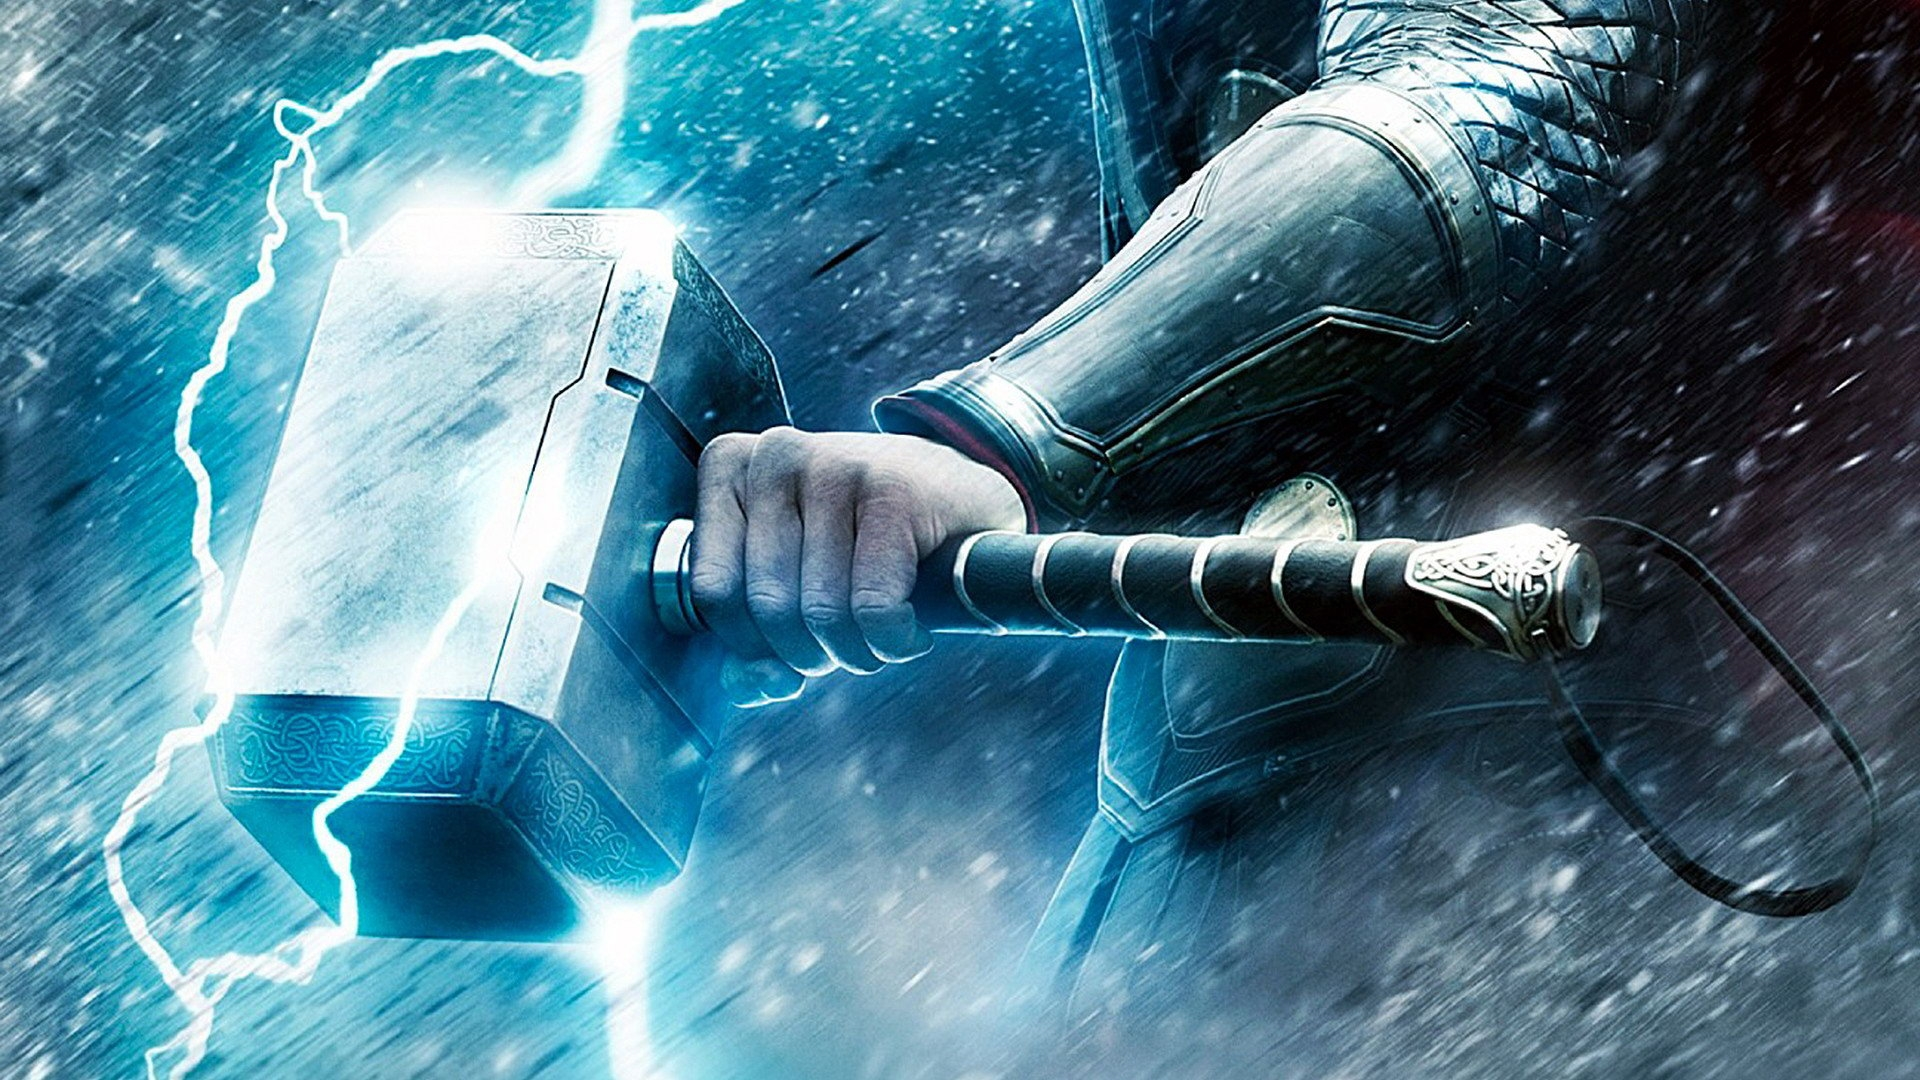 Hd wallpaper wap - Free Thor Wallpaper Hd Deskto